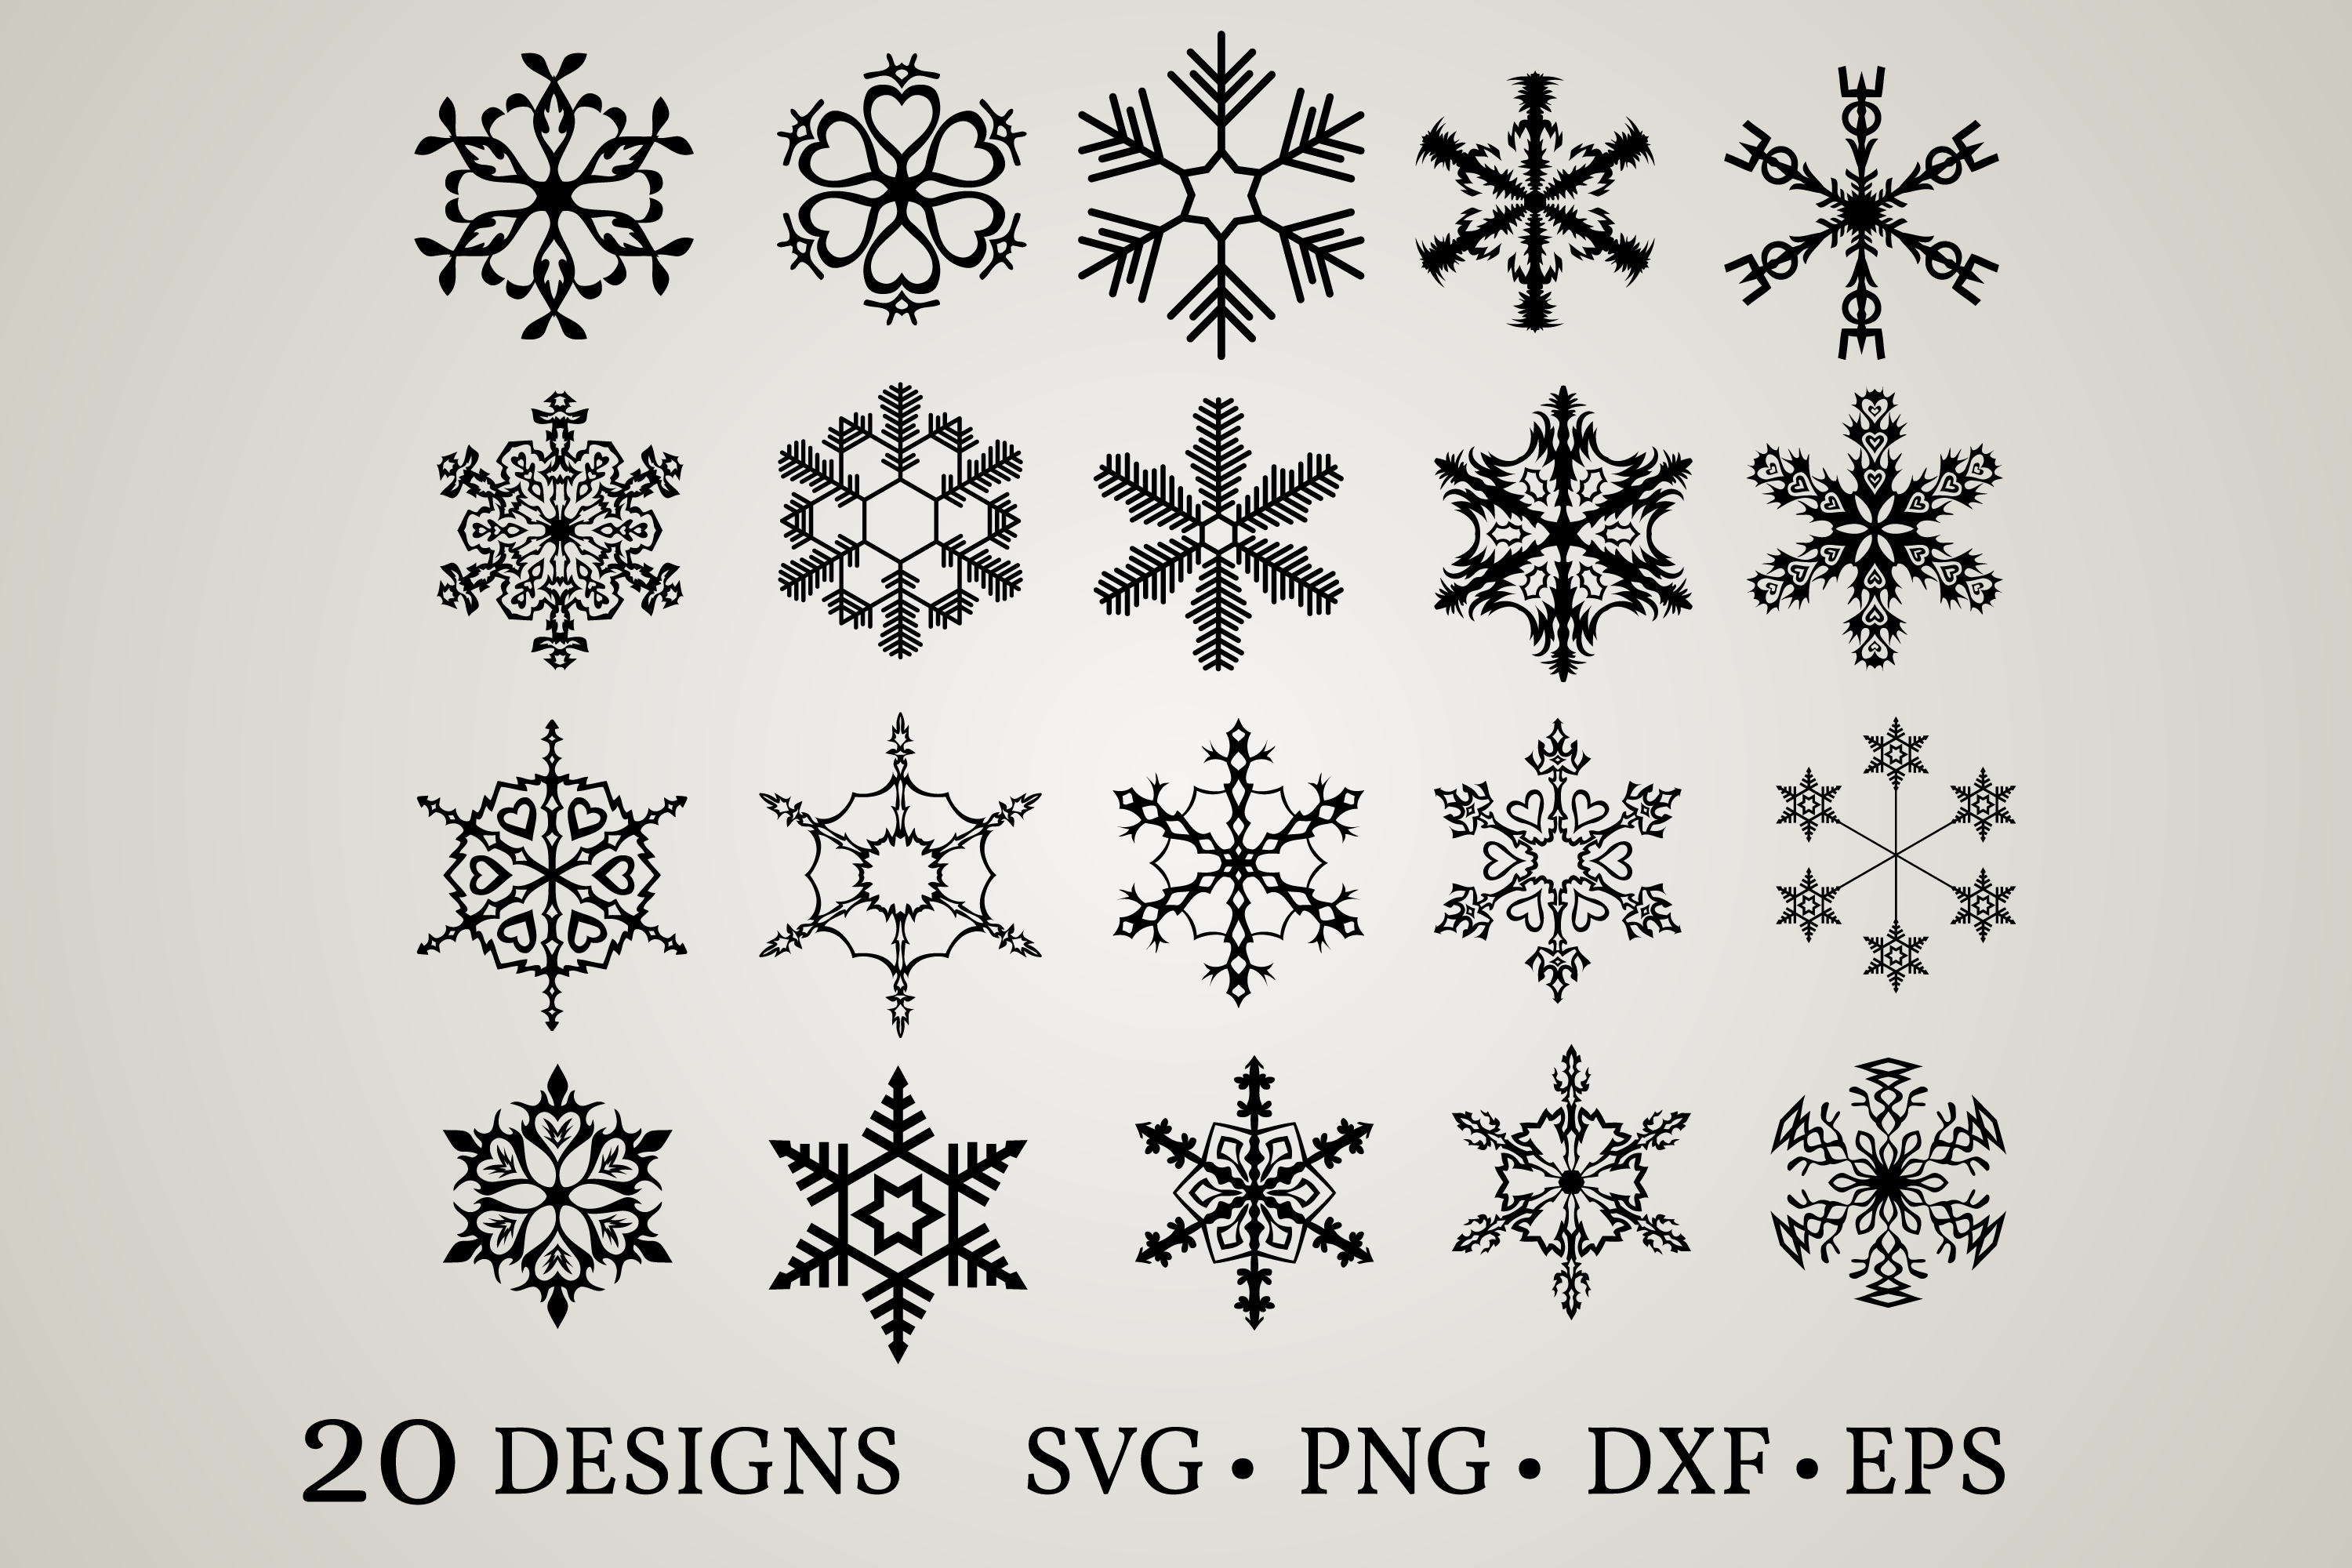 Download Free Snowflake Bundle Graphic By Euphoria Design Creative Fabrica for Cricut Explore, Silhouette and other cutting machines.